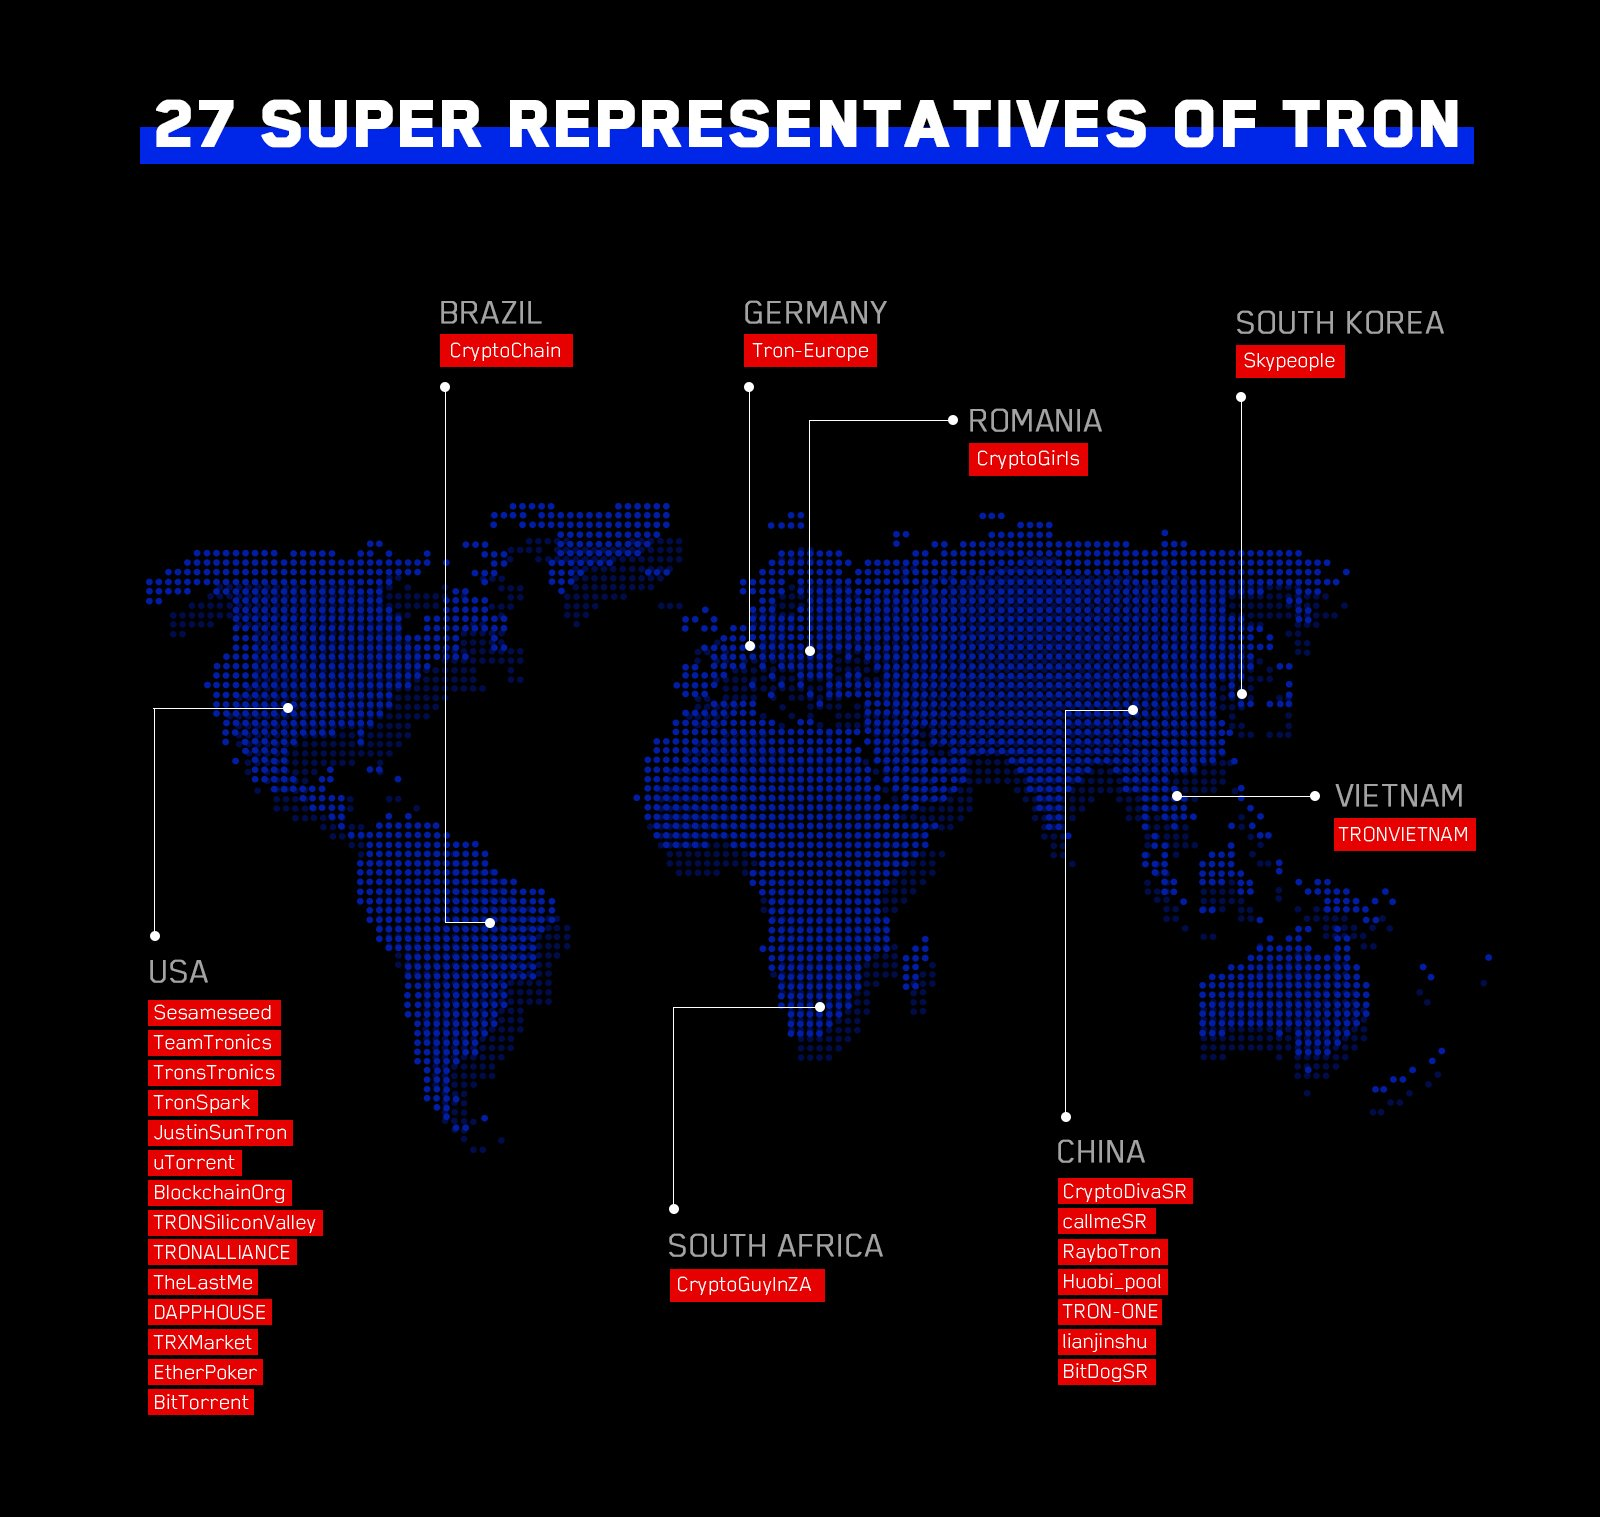 Tron Super Representative